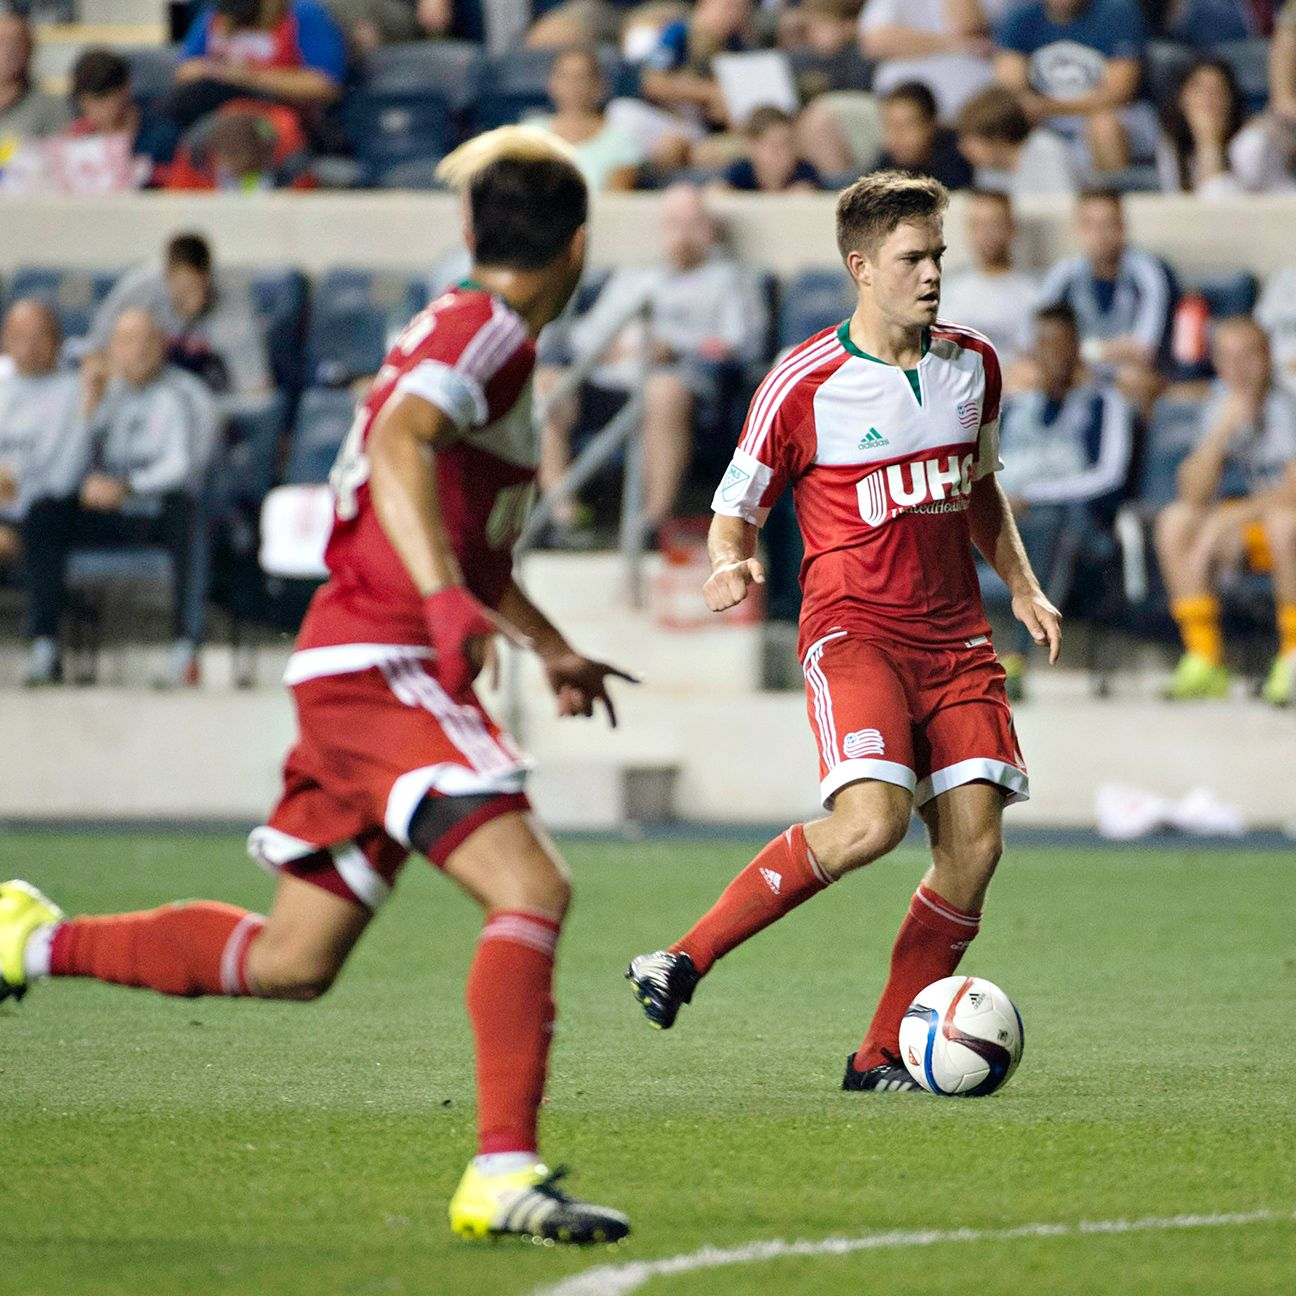 An unbeaten streak of five games has put the Revolution in good shape to make an energized drive for the top spot in the wide-open Eastern Conference.